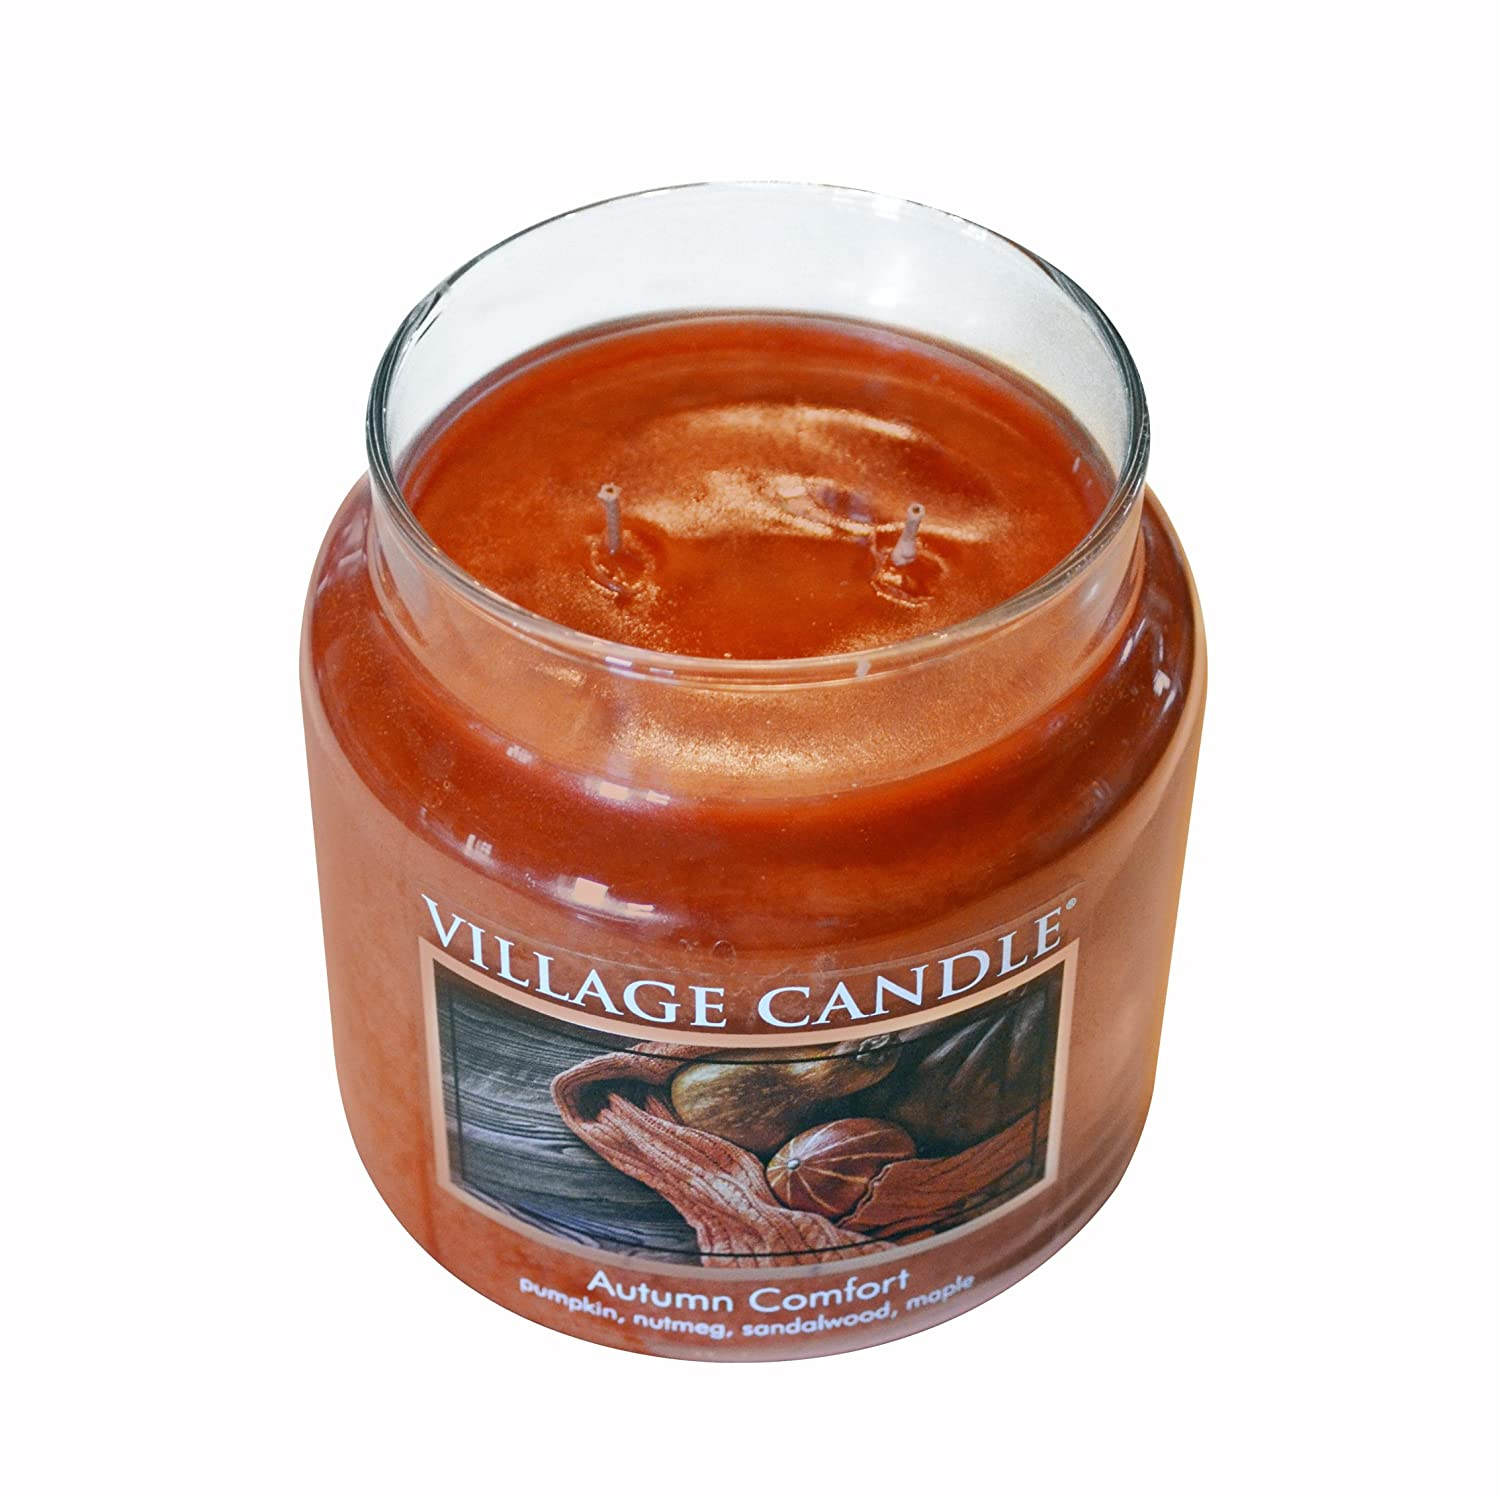 Village Candle Autumn Comfort 11 oz Glass Jar Scented Candle Small 106011833